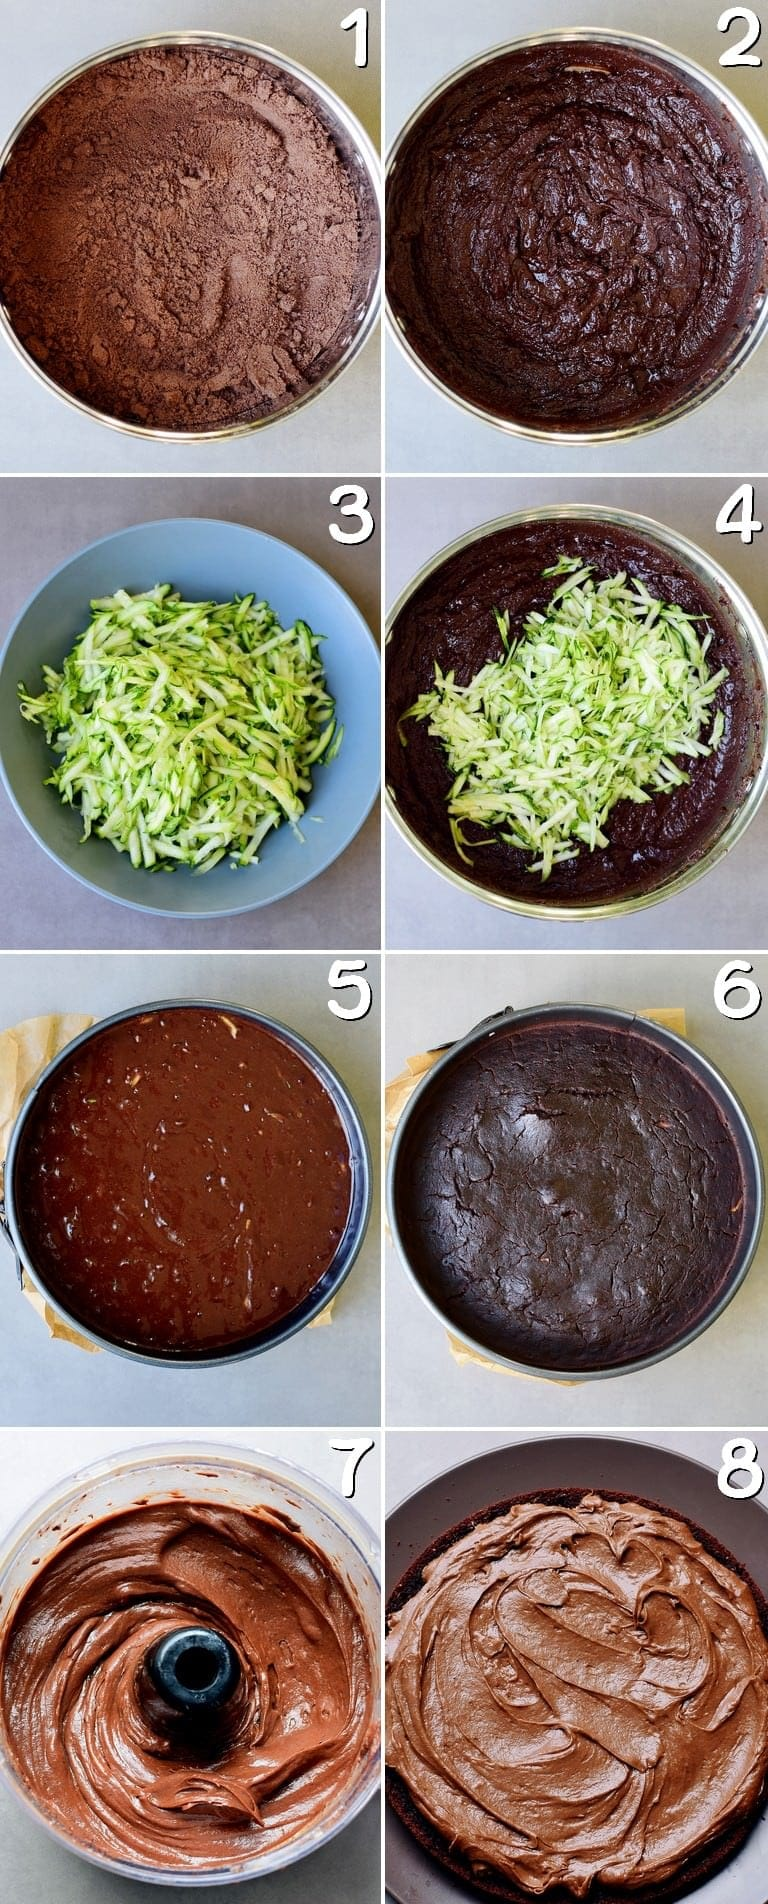 step-by-step process shots of how to make a gluten free chocolate cake with zucchini and sweet potato